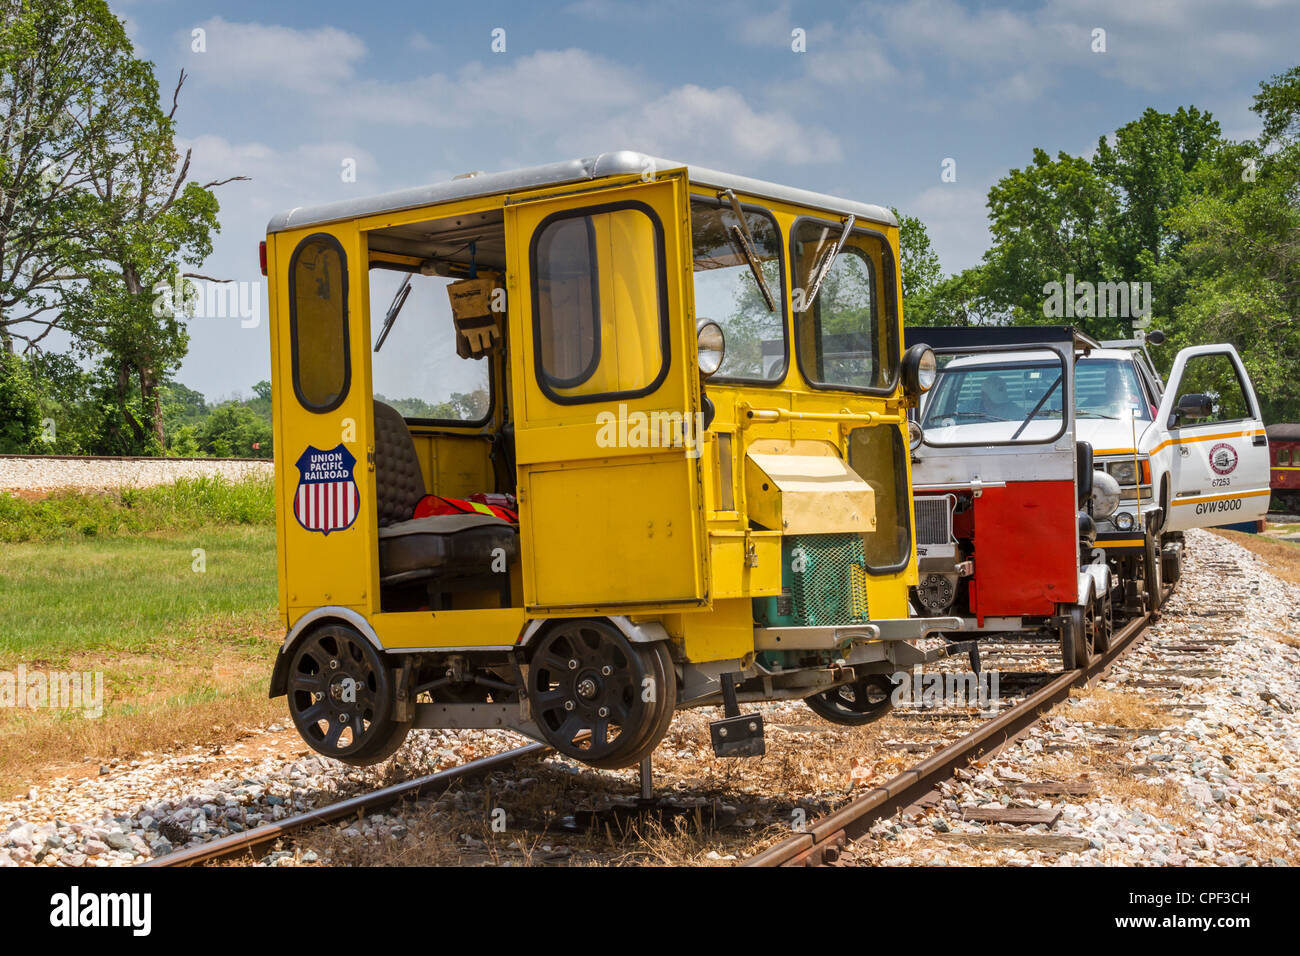 Where To Buy Old Railroad Car In Idaho